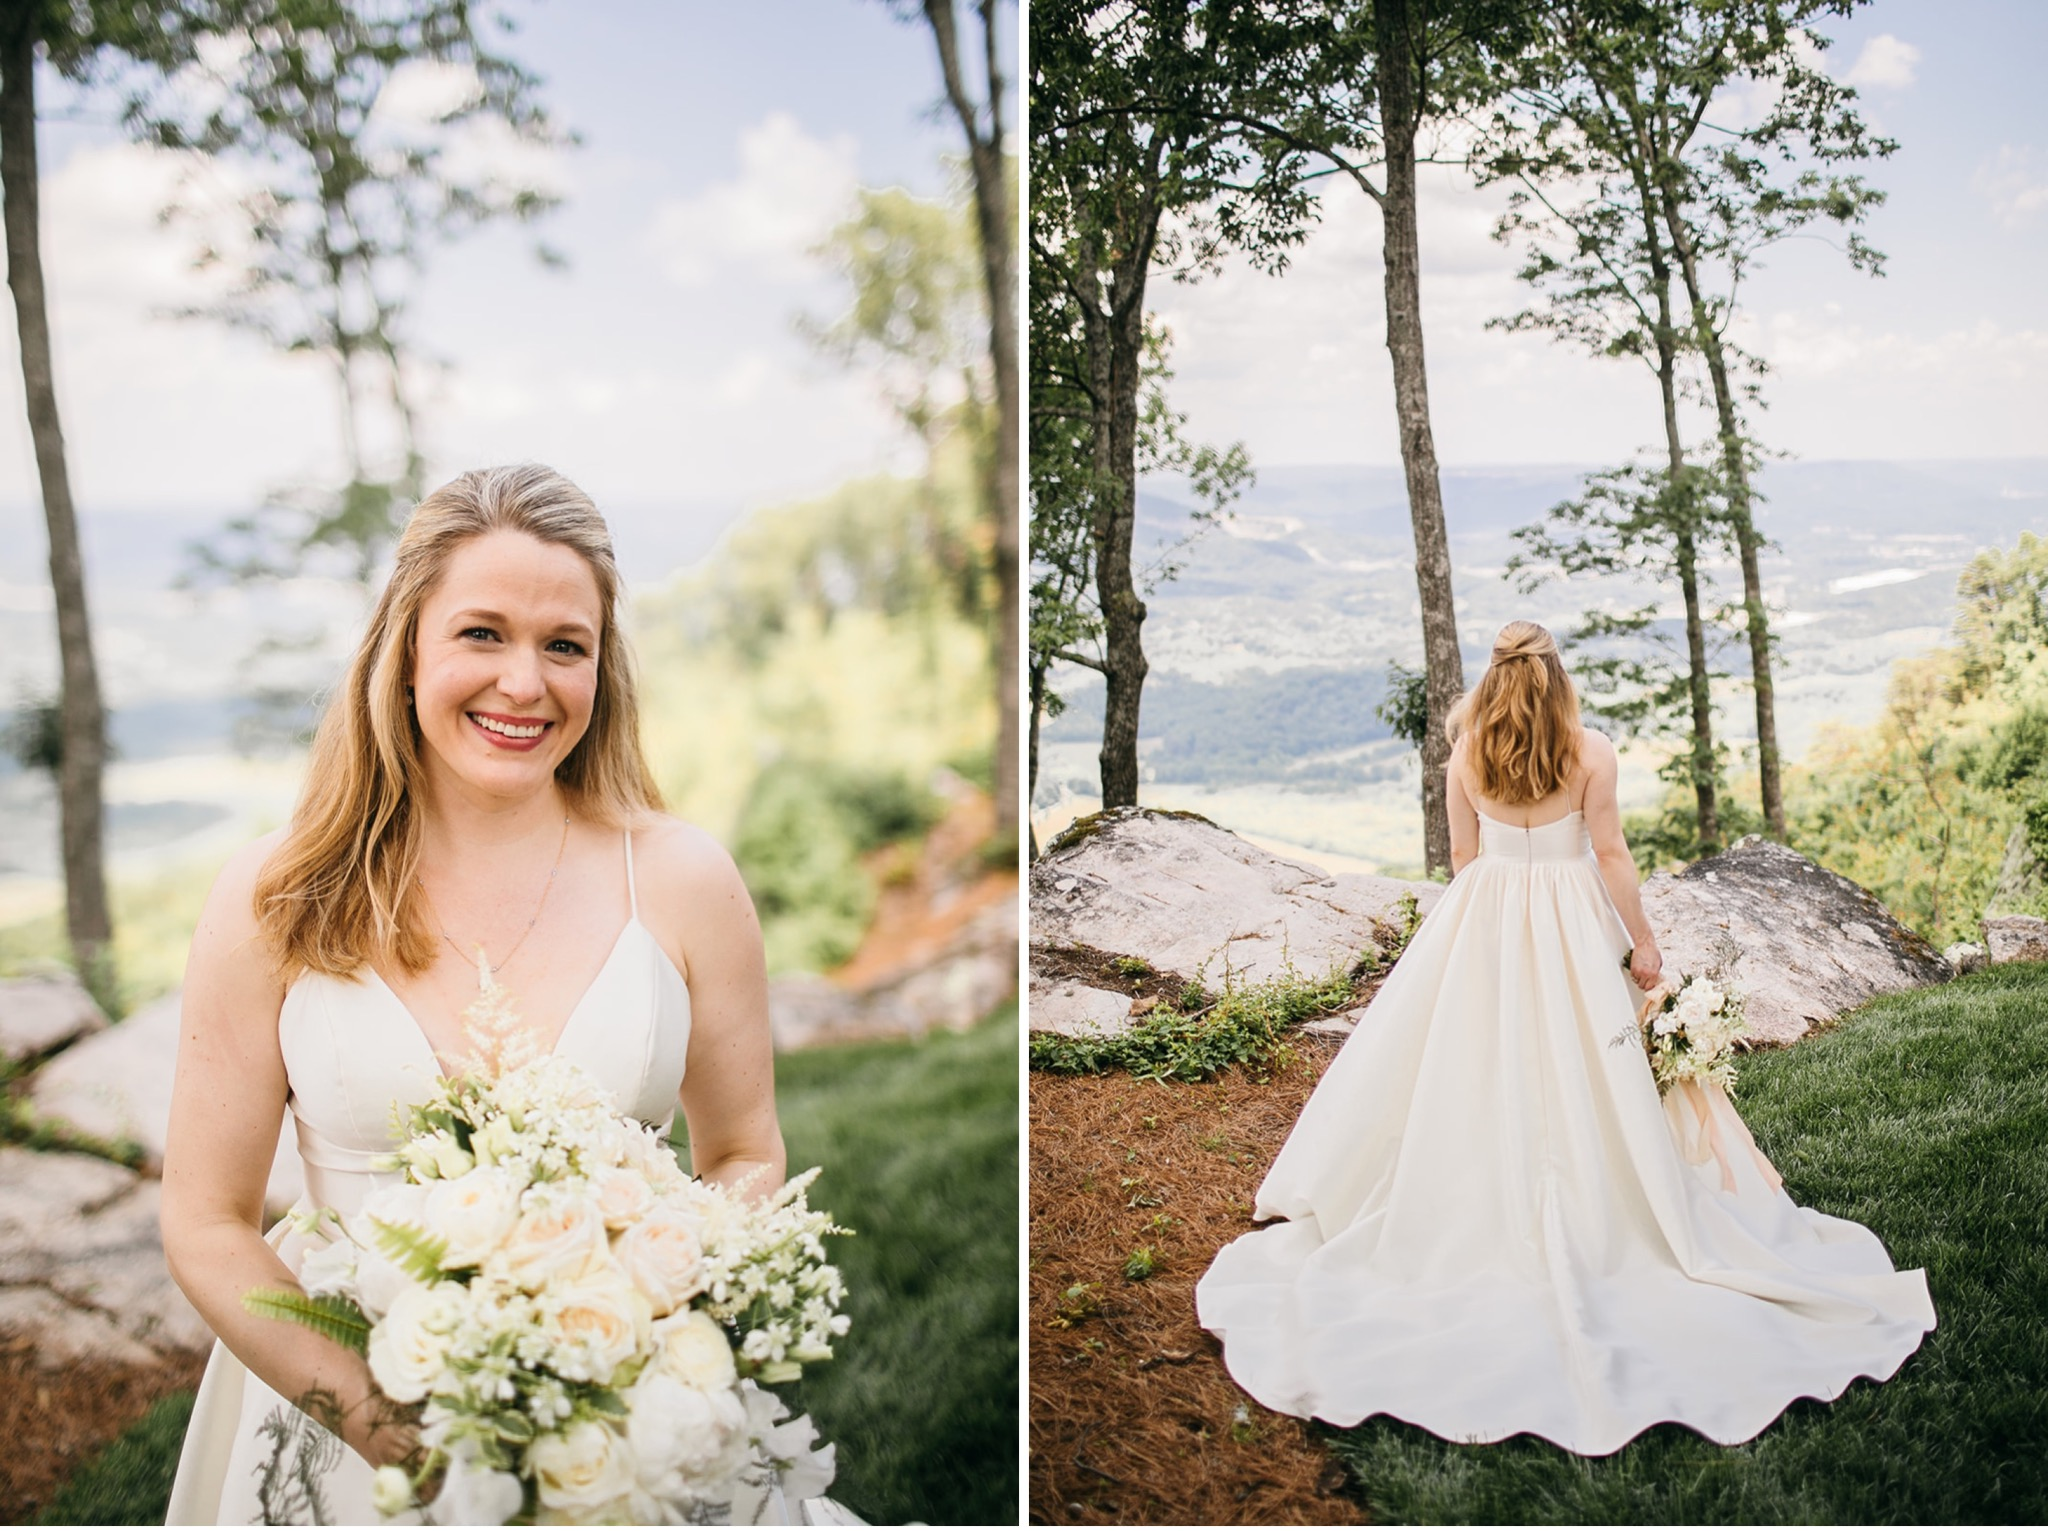 bride in white gown with long train stands in grass at a rocky overlook with view of a wide valley in front of her